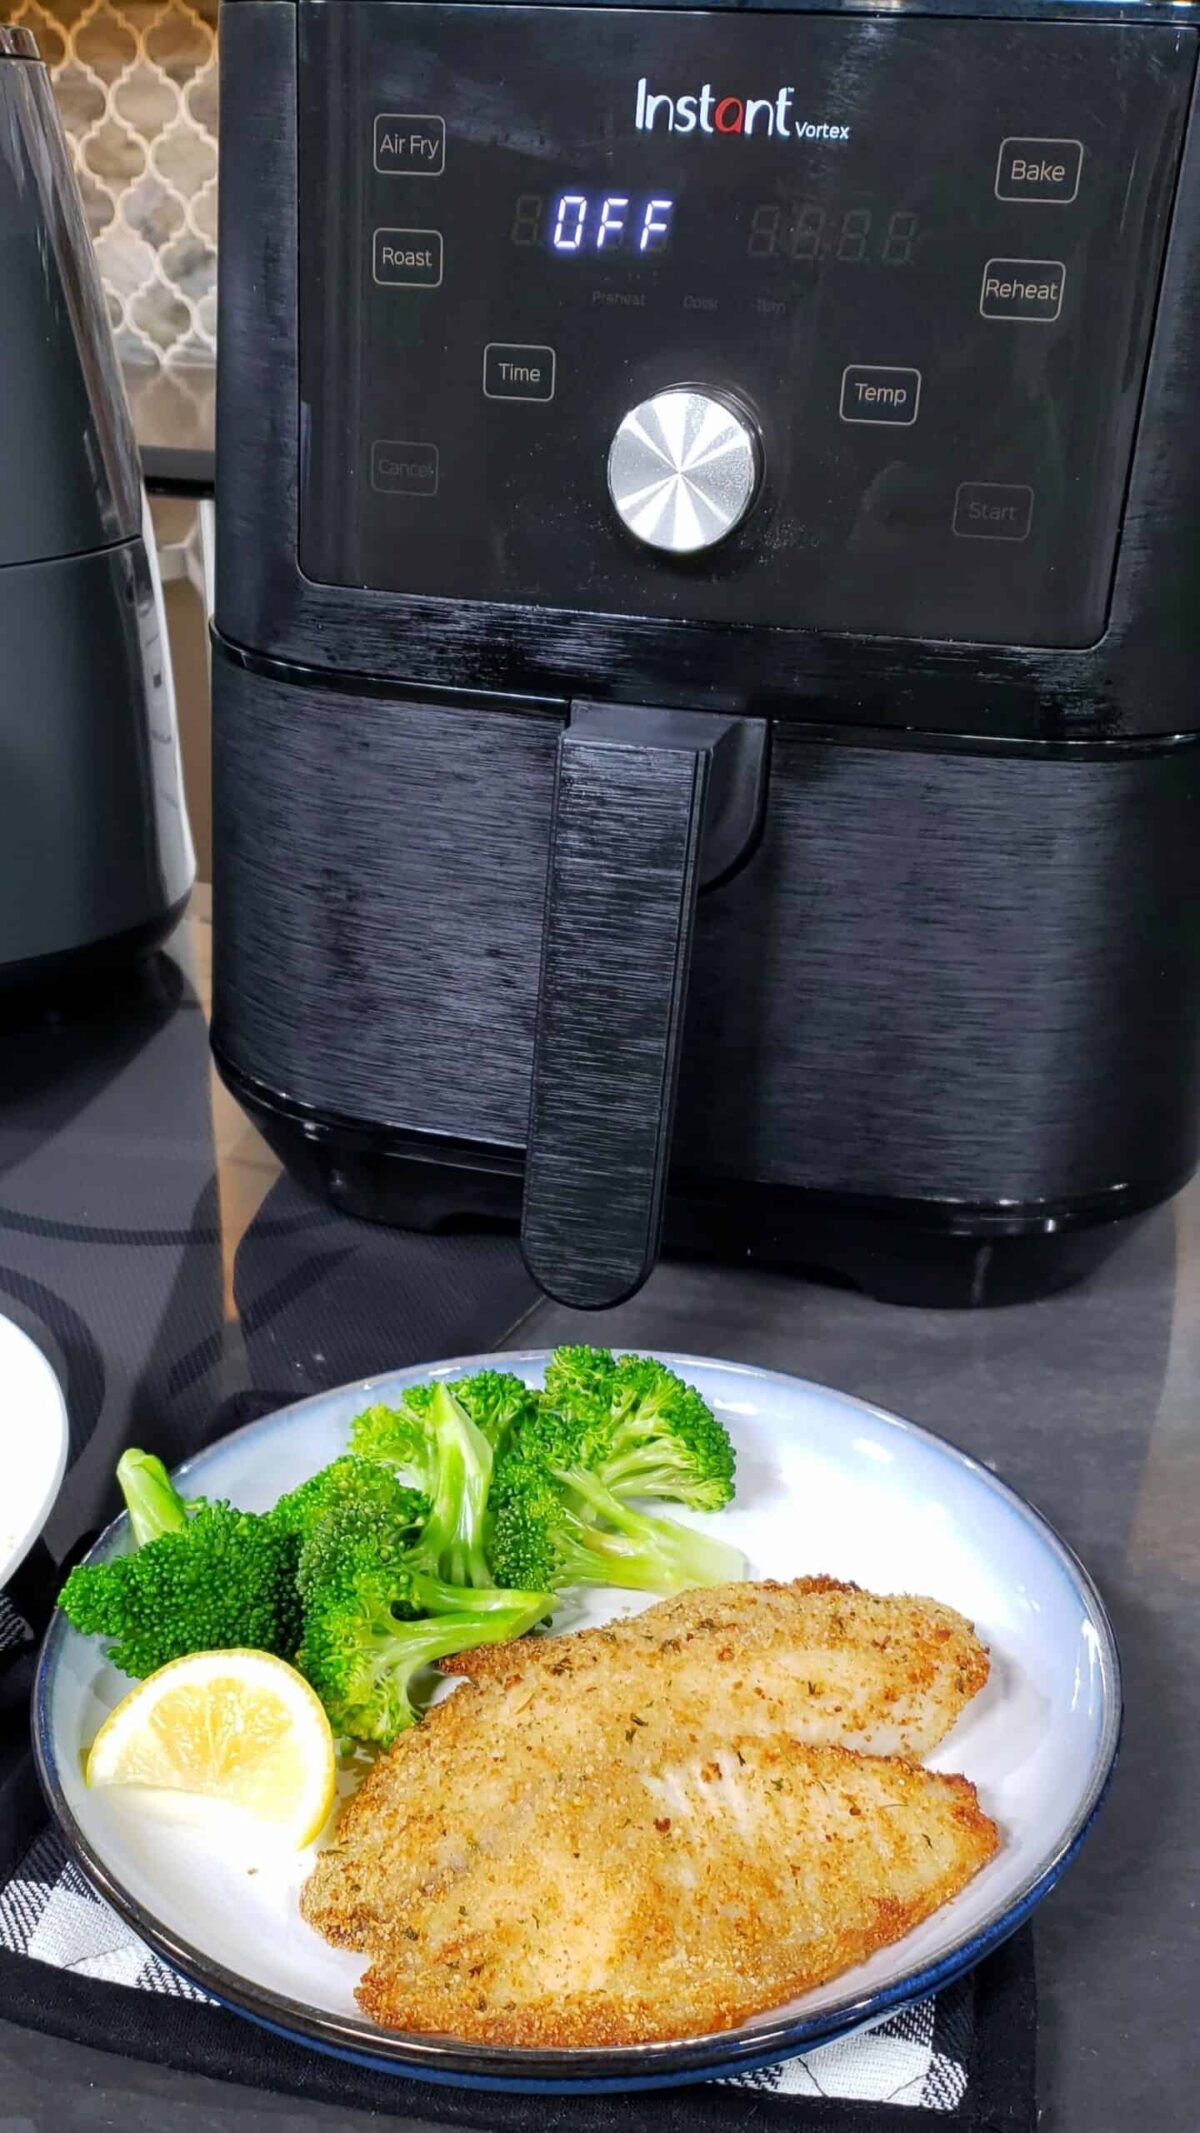 breaded tilapia on blue and white plate with broccoli and lemon with air fryer